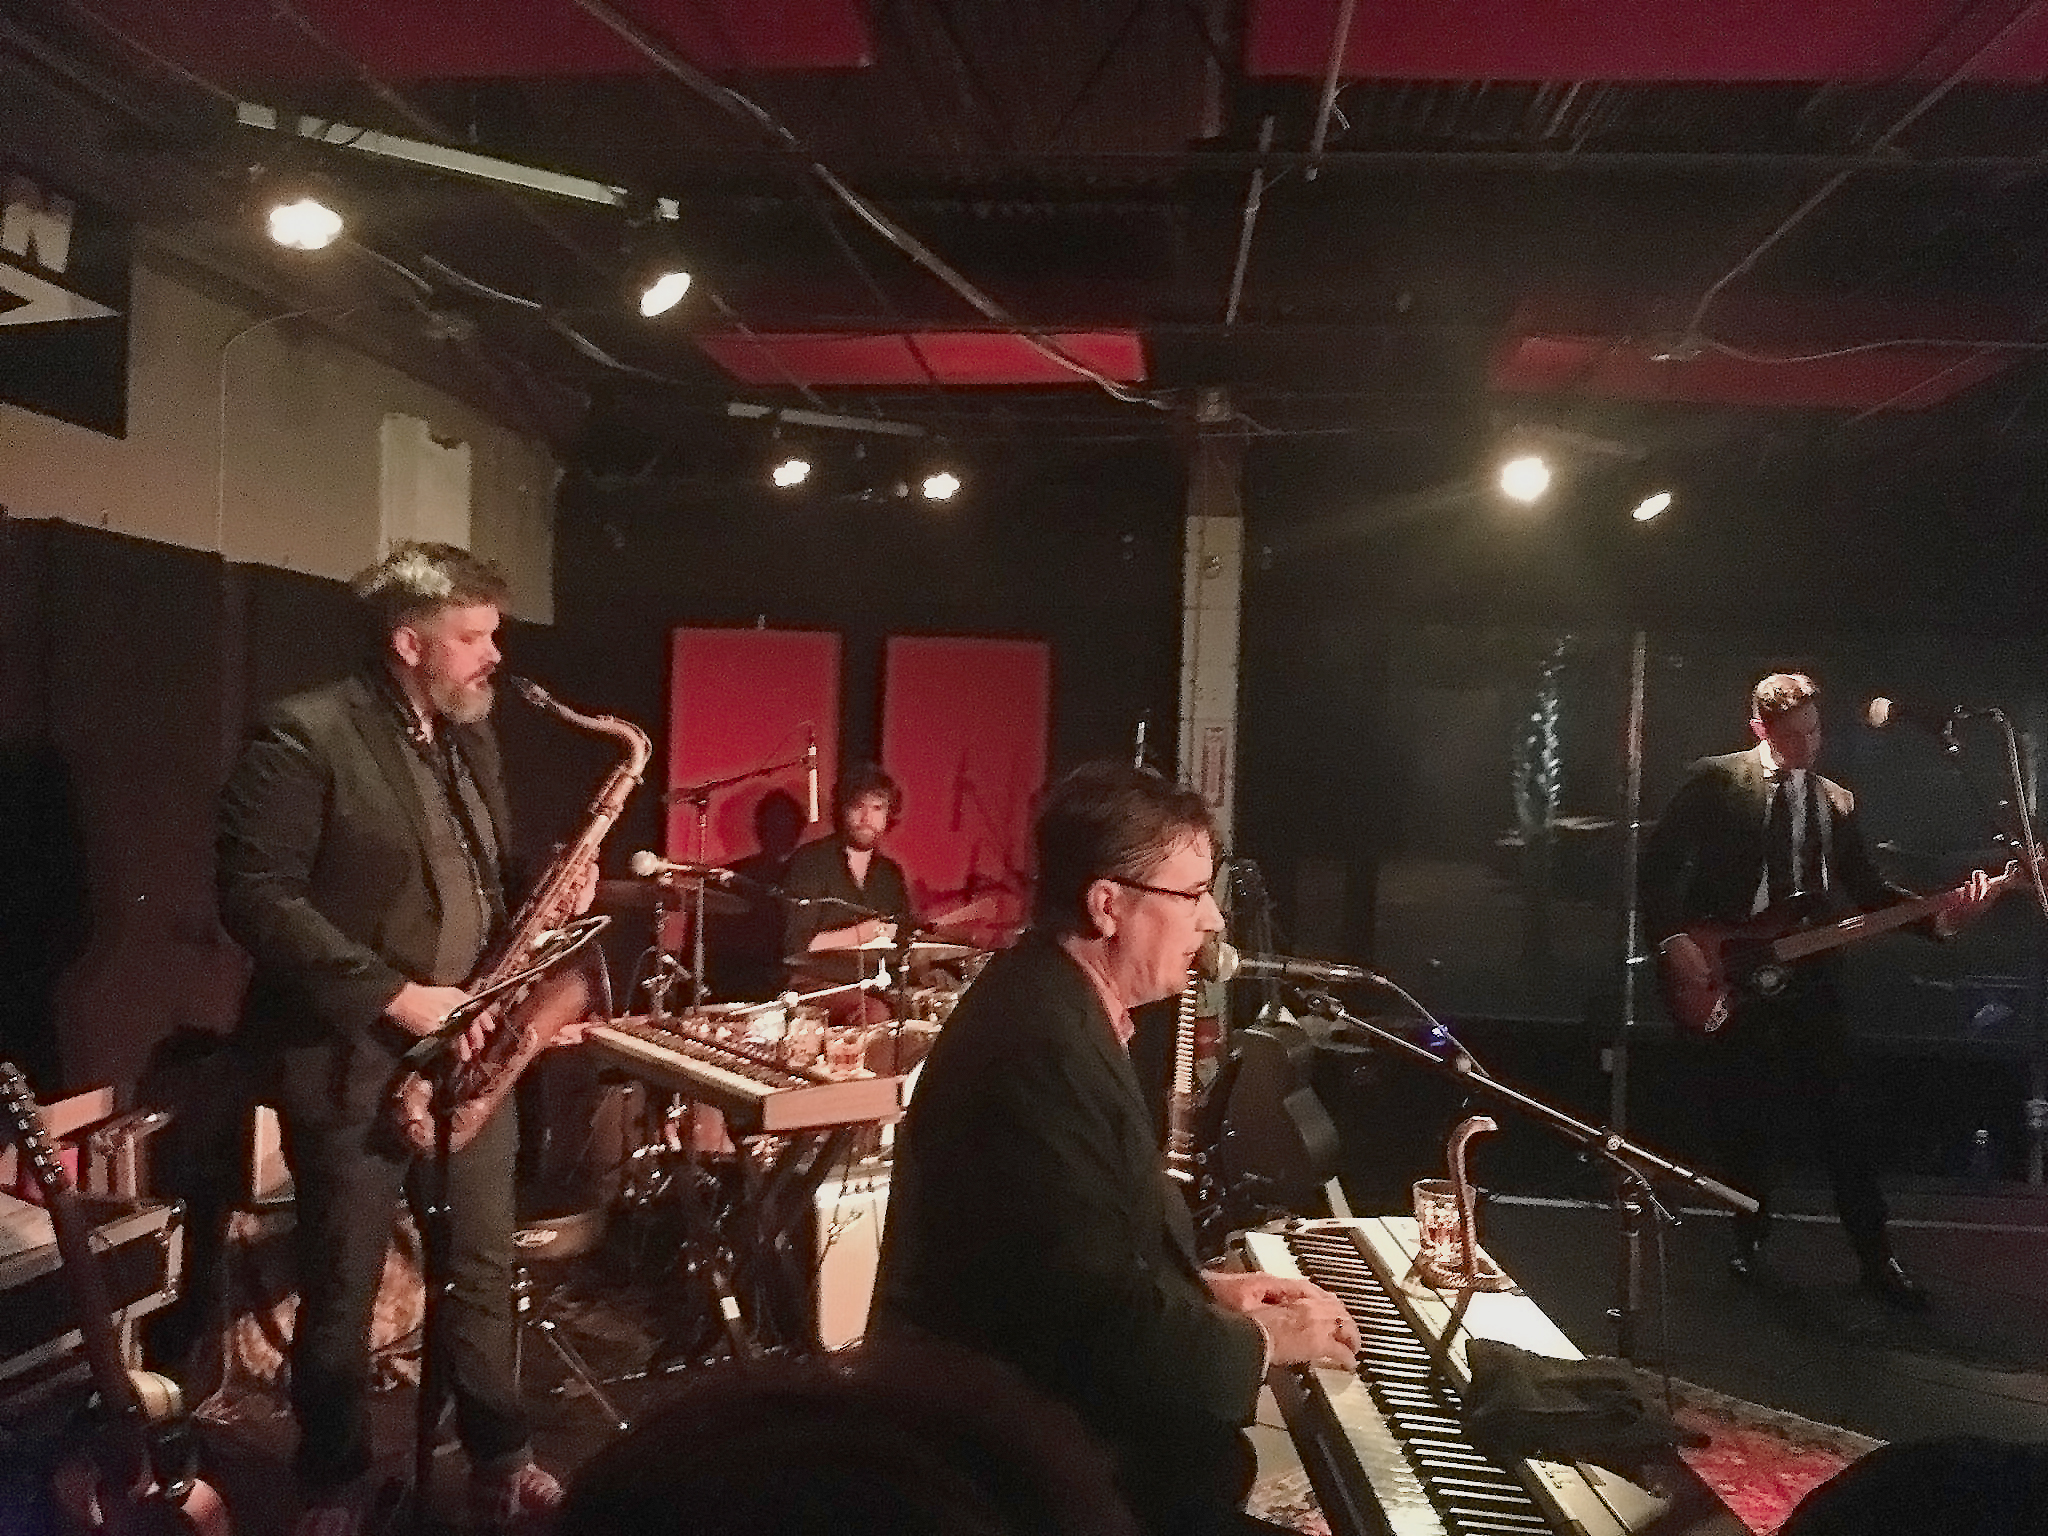 LIVE REVIEW: The Mountain Goats @The Wilbury